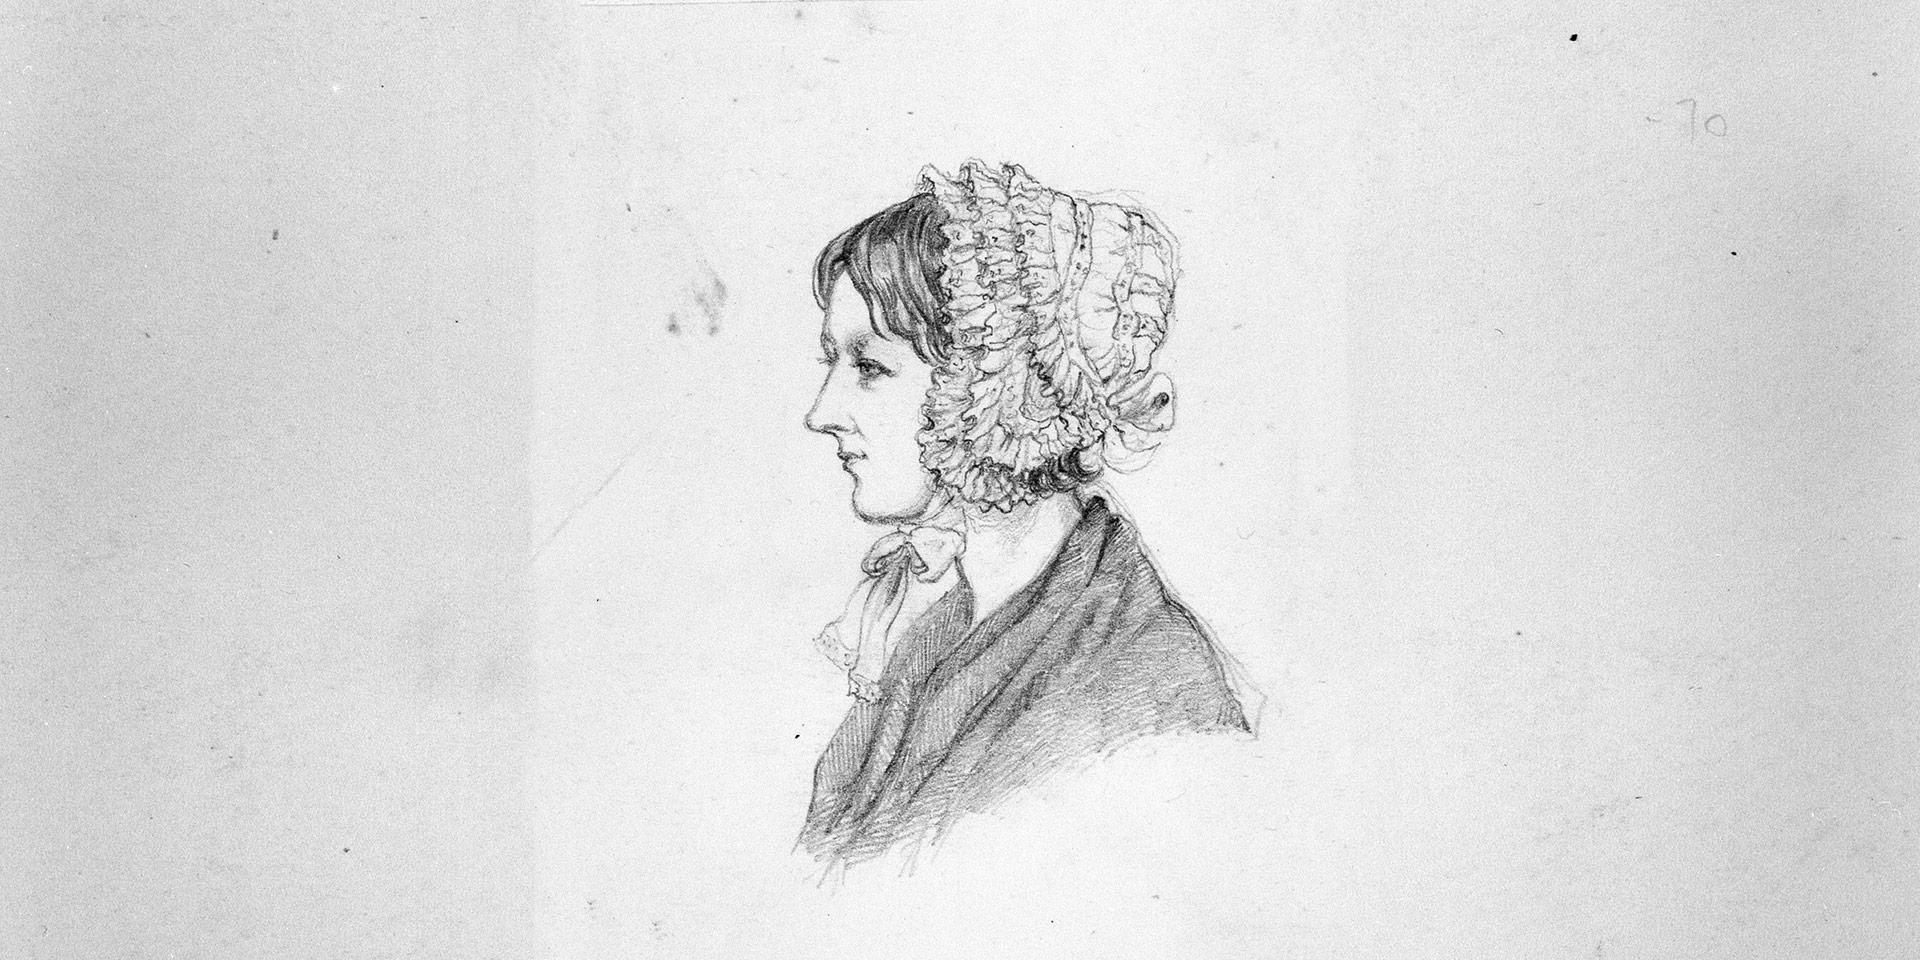 Florence sketched at the time of her illness, 1856